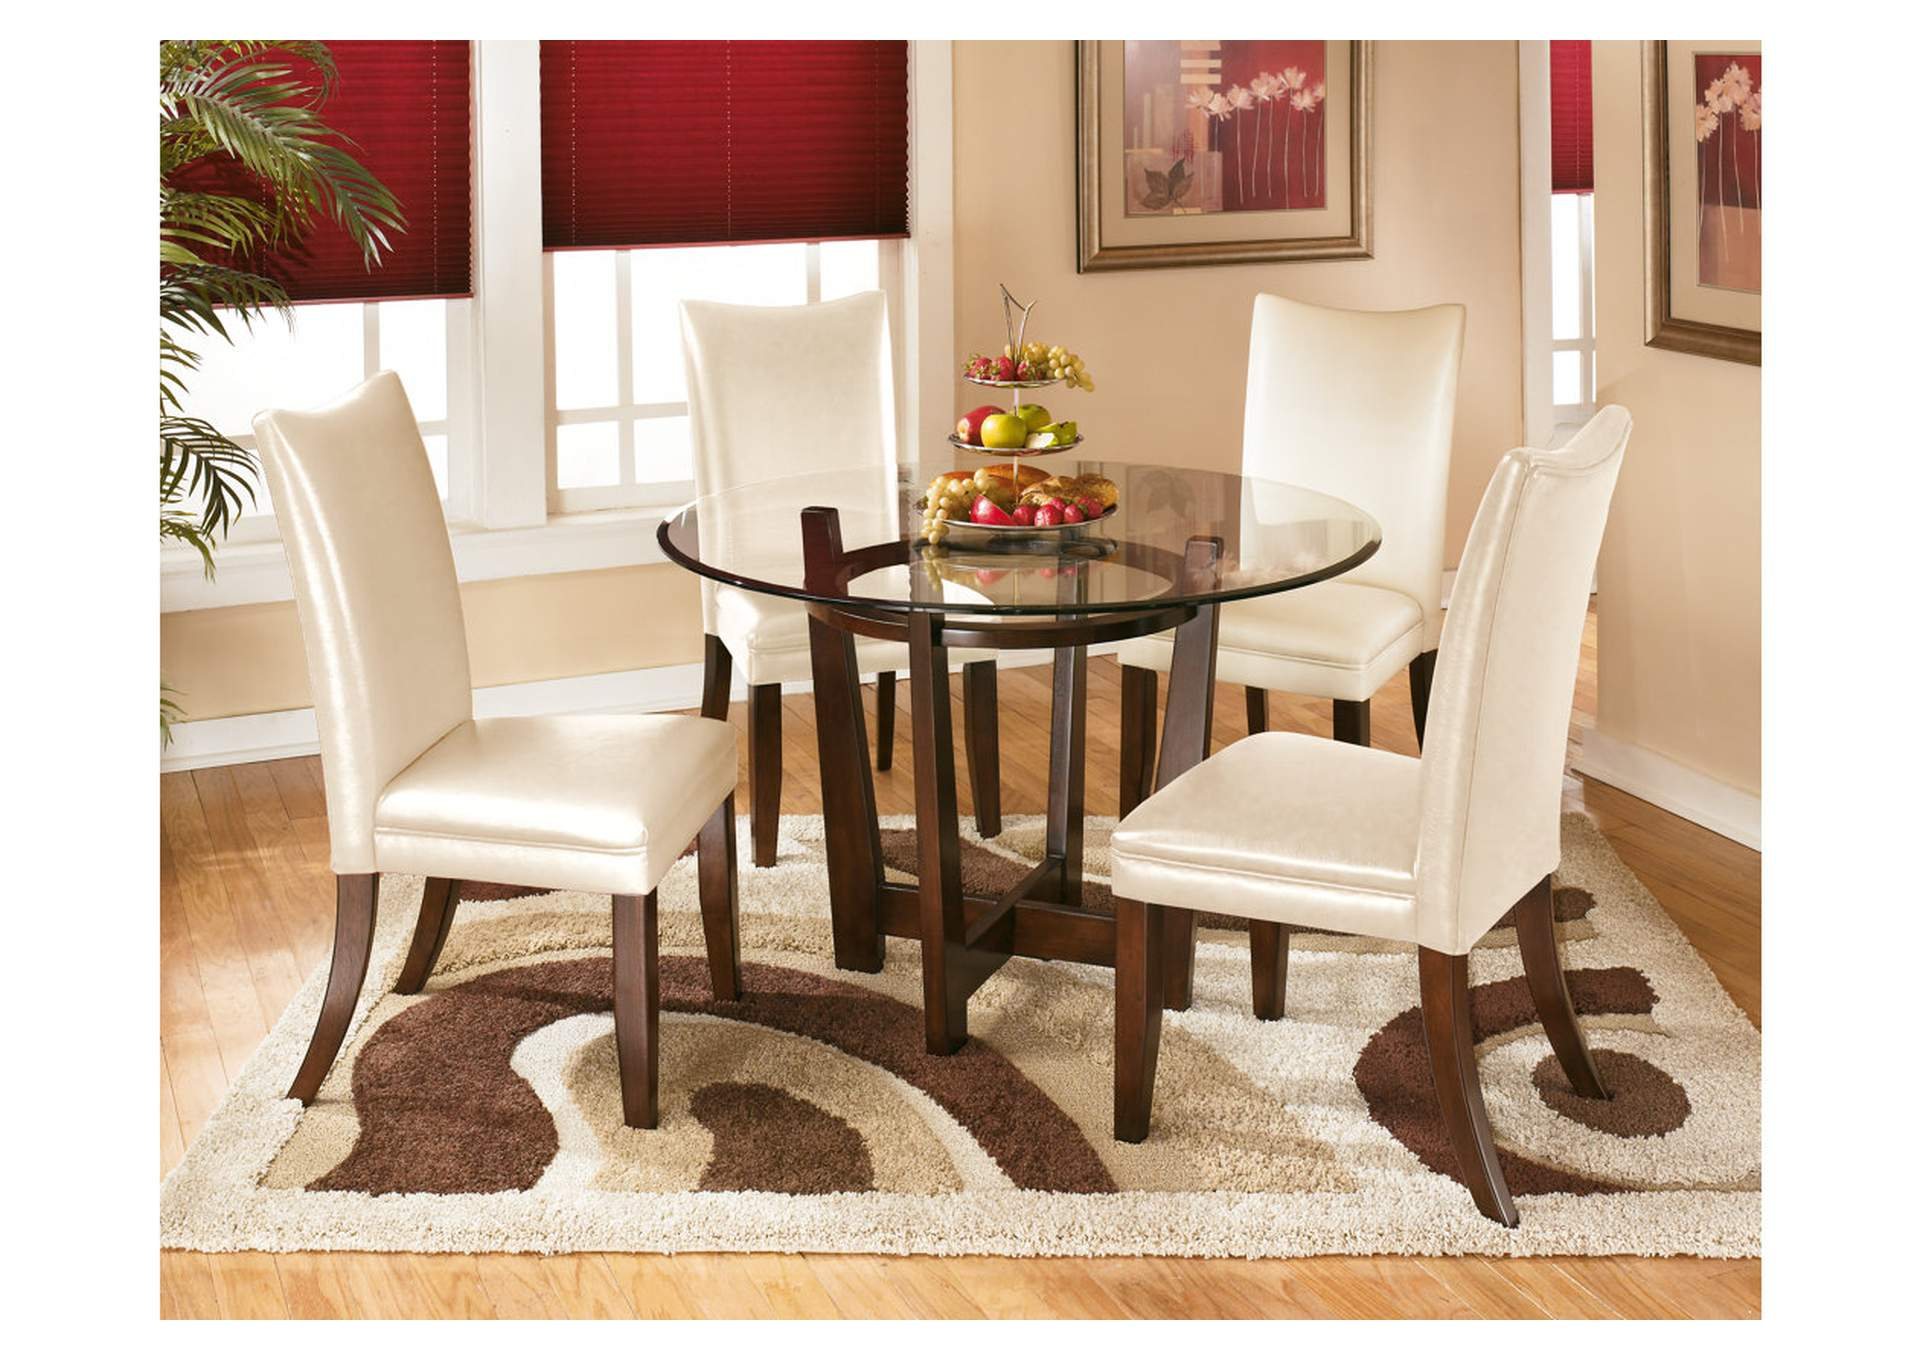 Beau Charell Round Dining Table W/4 Ivory Side Chairs